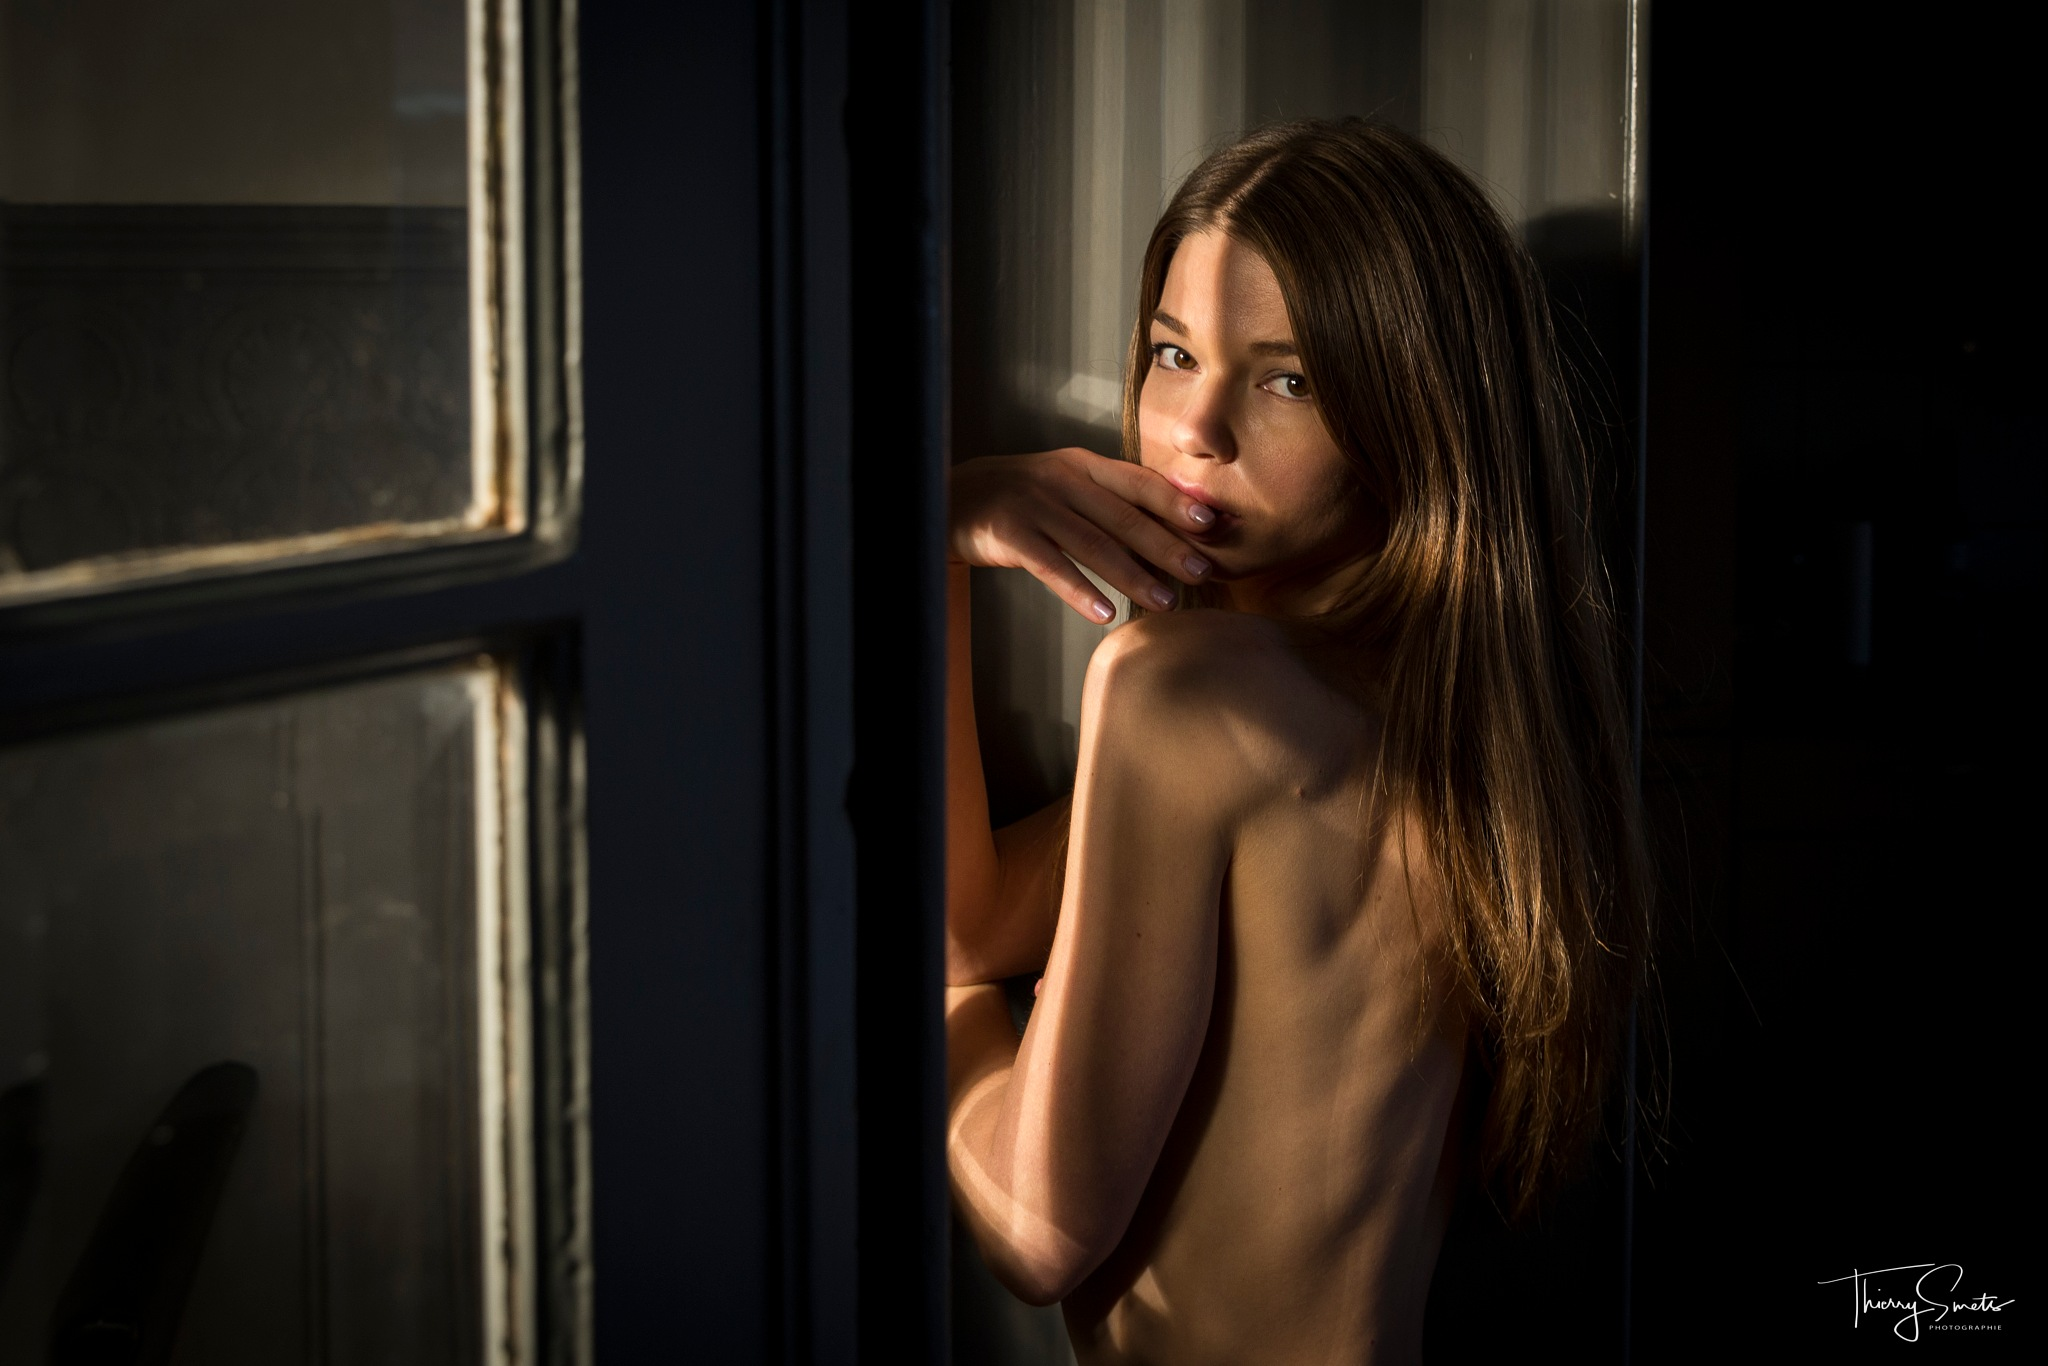 Katia 56 by Thierry SMETS